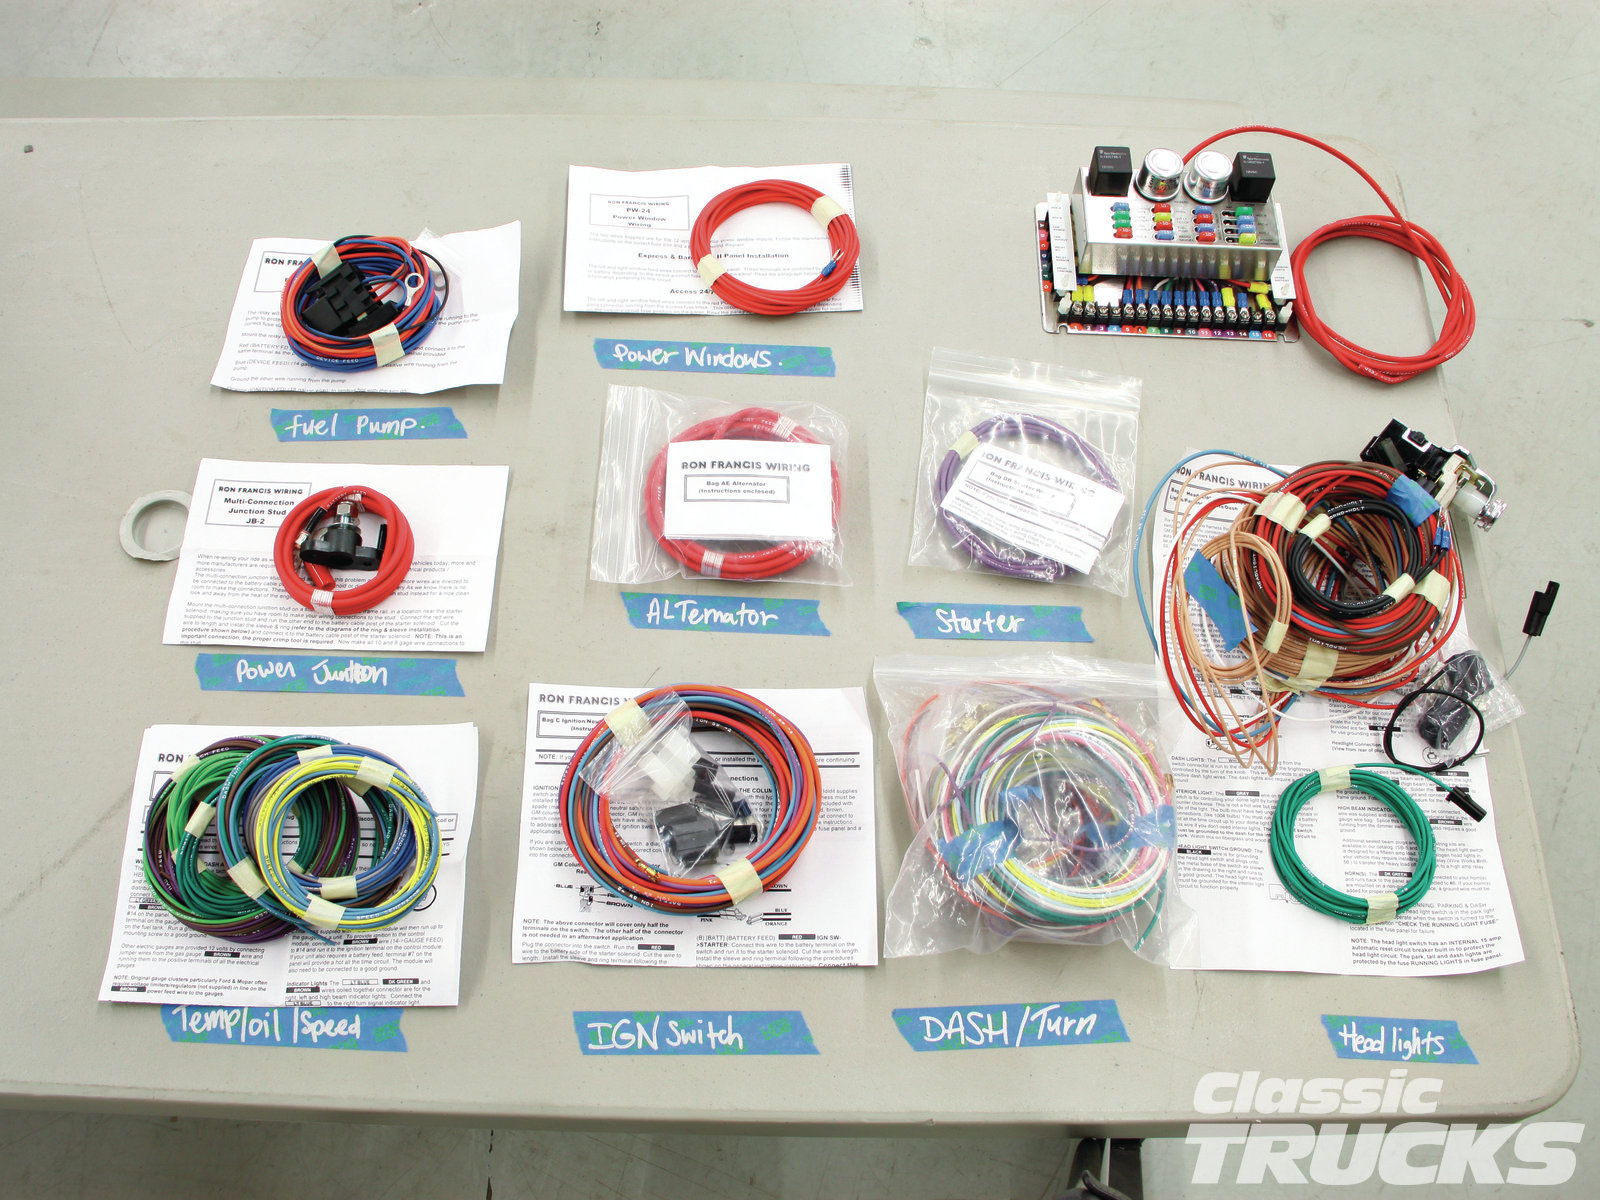 01. Here's a quick look at the Ron Francis Express kit and an easy way to lay things out. When you receive the kit, it has the main fuse panel and several well-labeled bags of wiring in the box. Upon opening a bag, I found detailed instructions inside to help with wiring. The needed connecters for headlights, headlight switch, etc., are also included with the appropriate wiring bag along with other connectors. Each individual wire is labeled with its corresponding part name which runs the length of the wire for ease of identification.